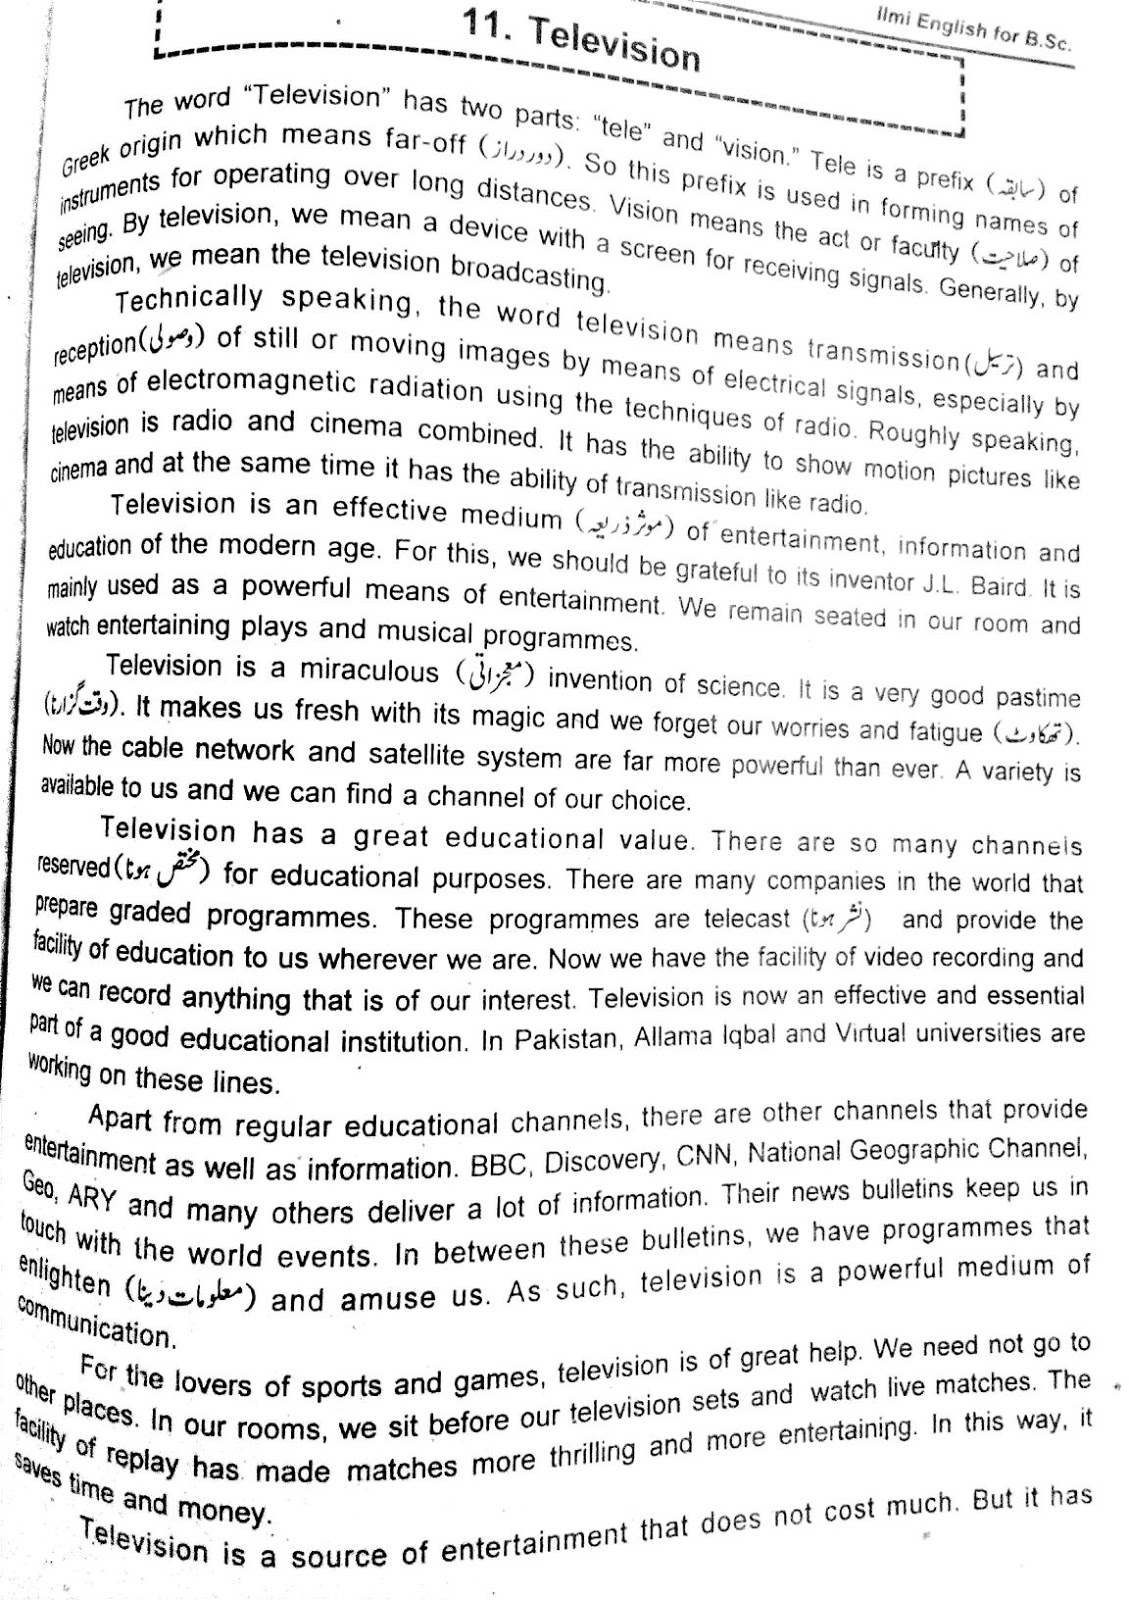 011 Television2b252812529 Essay Example My Favourite Newspaper In Striking English Full